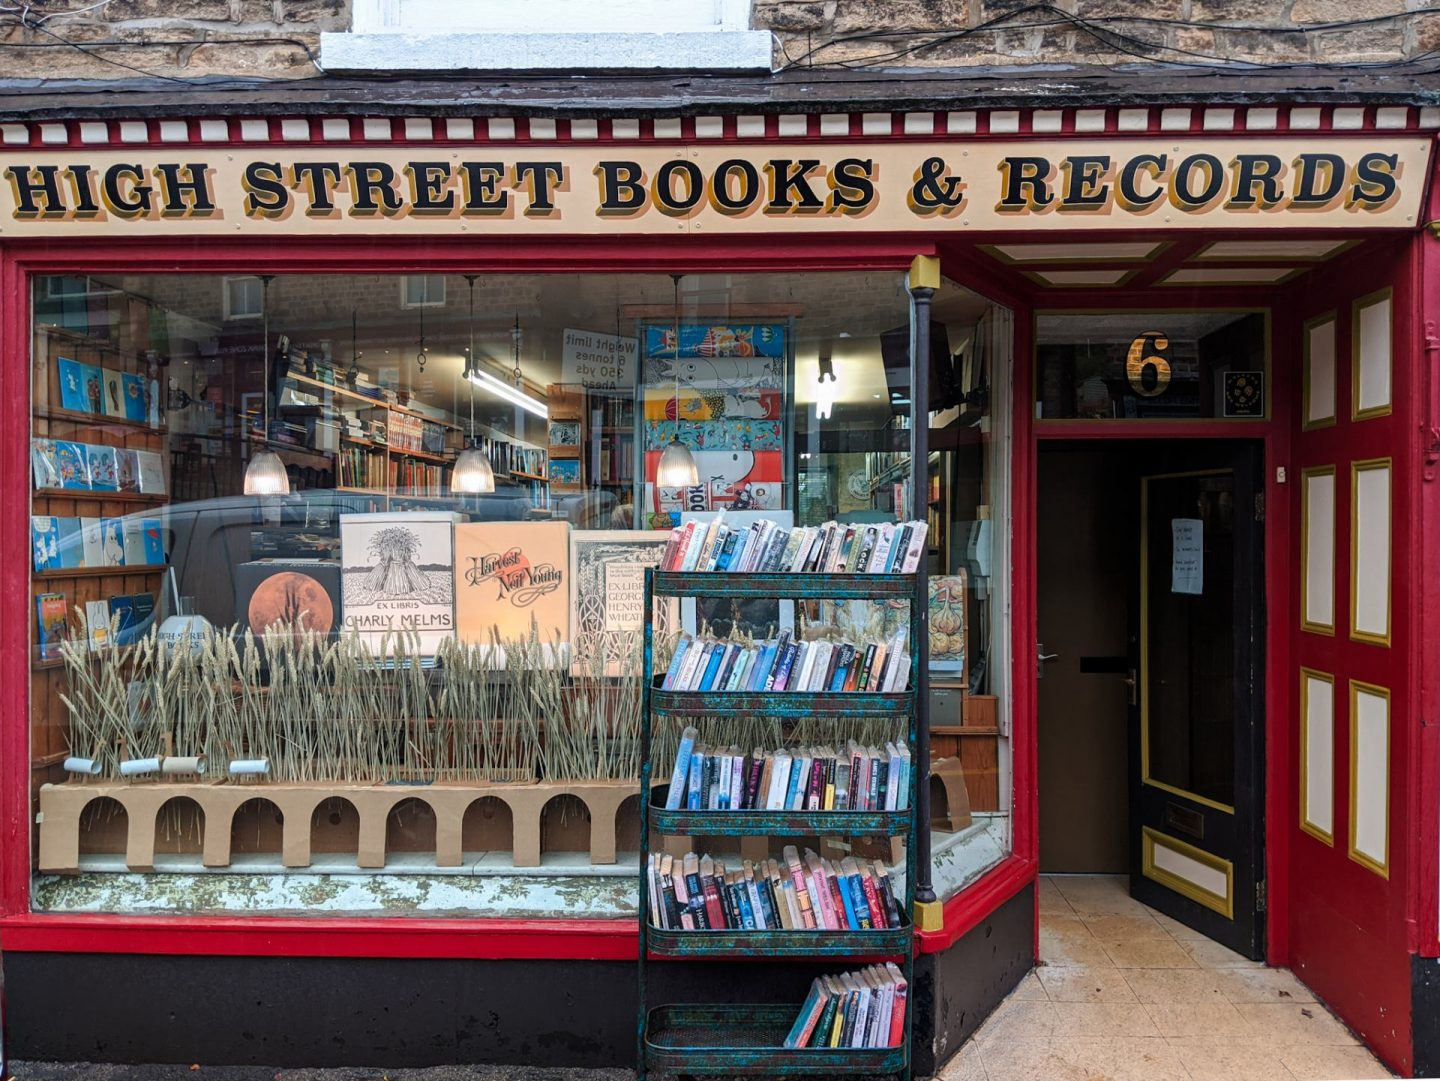 The front window and door of High Street Books and Records in New Mills, Derbyshire. The woodwork is painted in maroon.